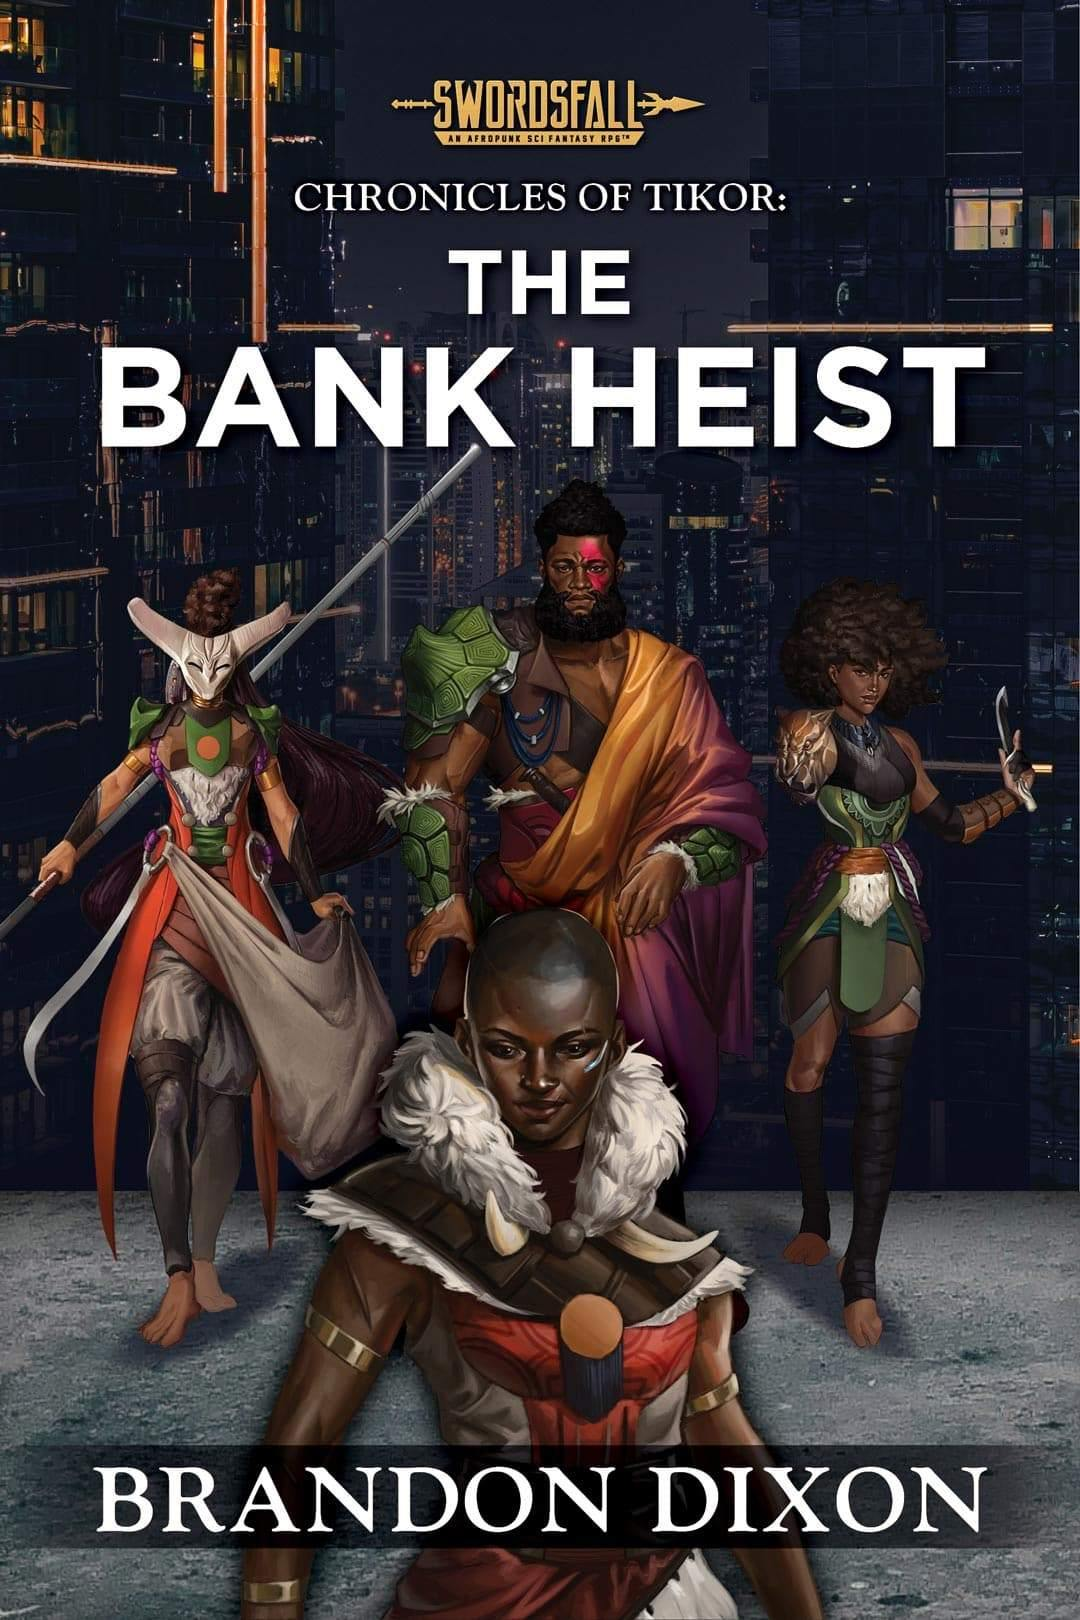 The Bank Heist: A Swordsfall Lore Book (The Chronicles of Tikor) - Swordsfall